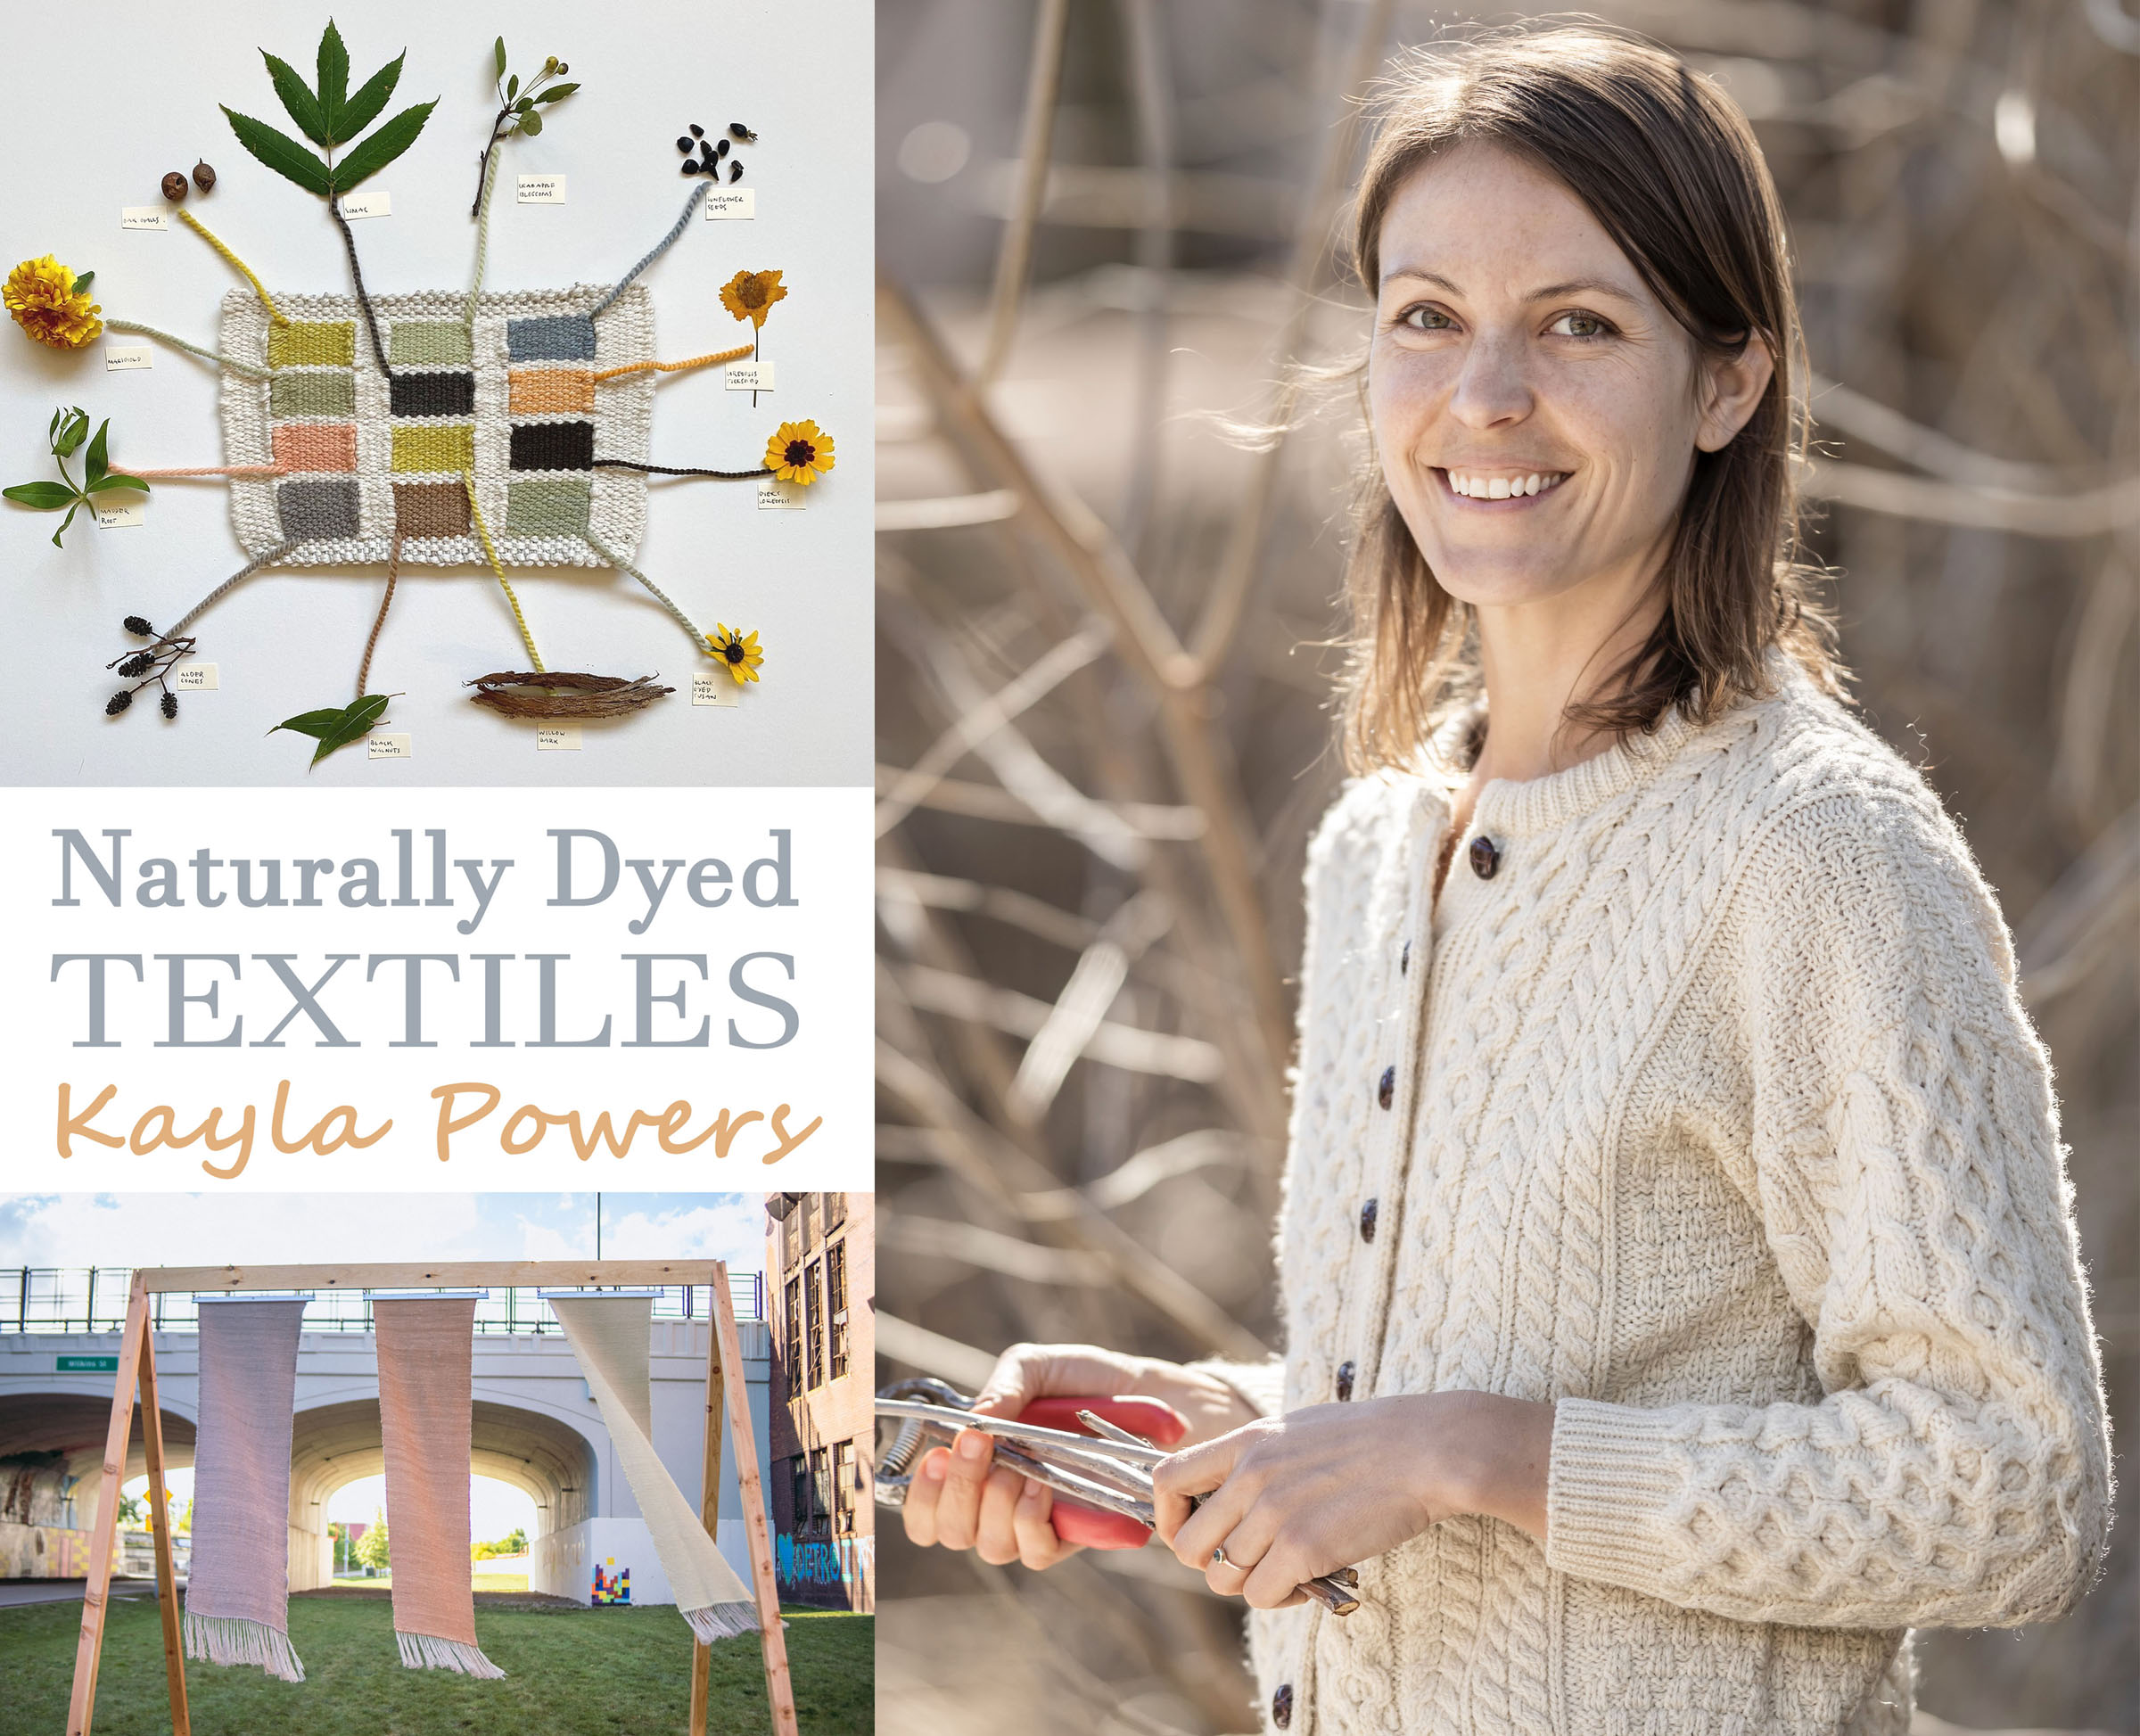 Natural Dyes - Kayla Powers